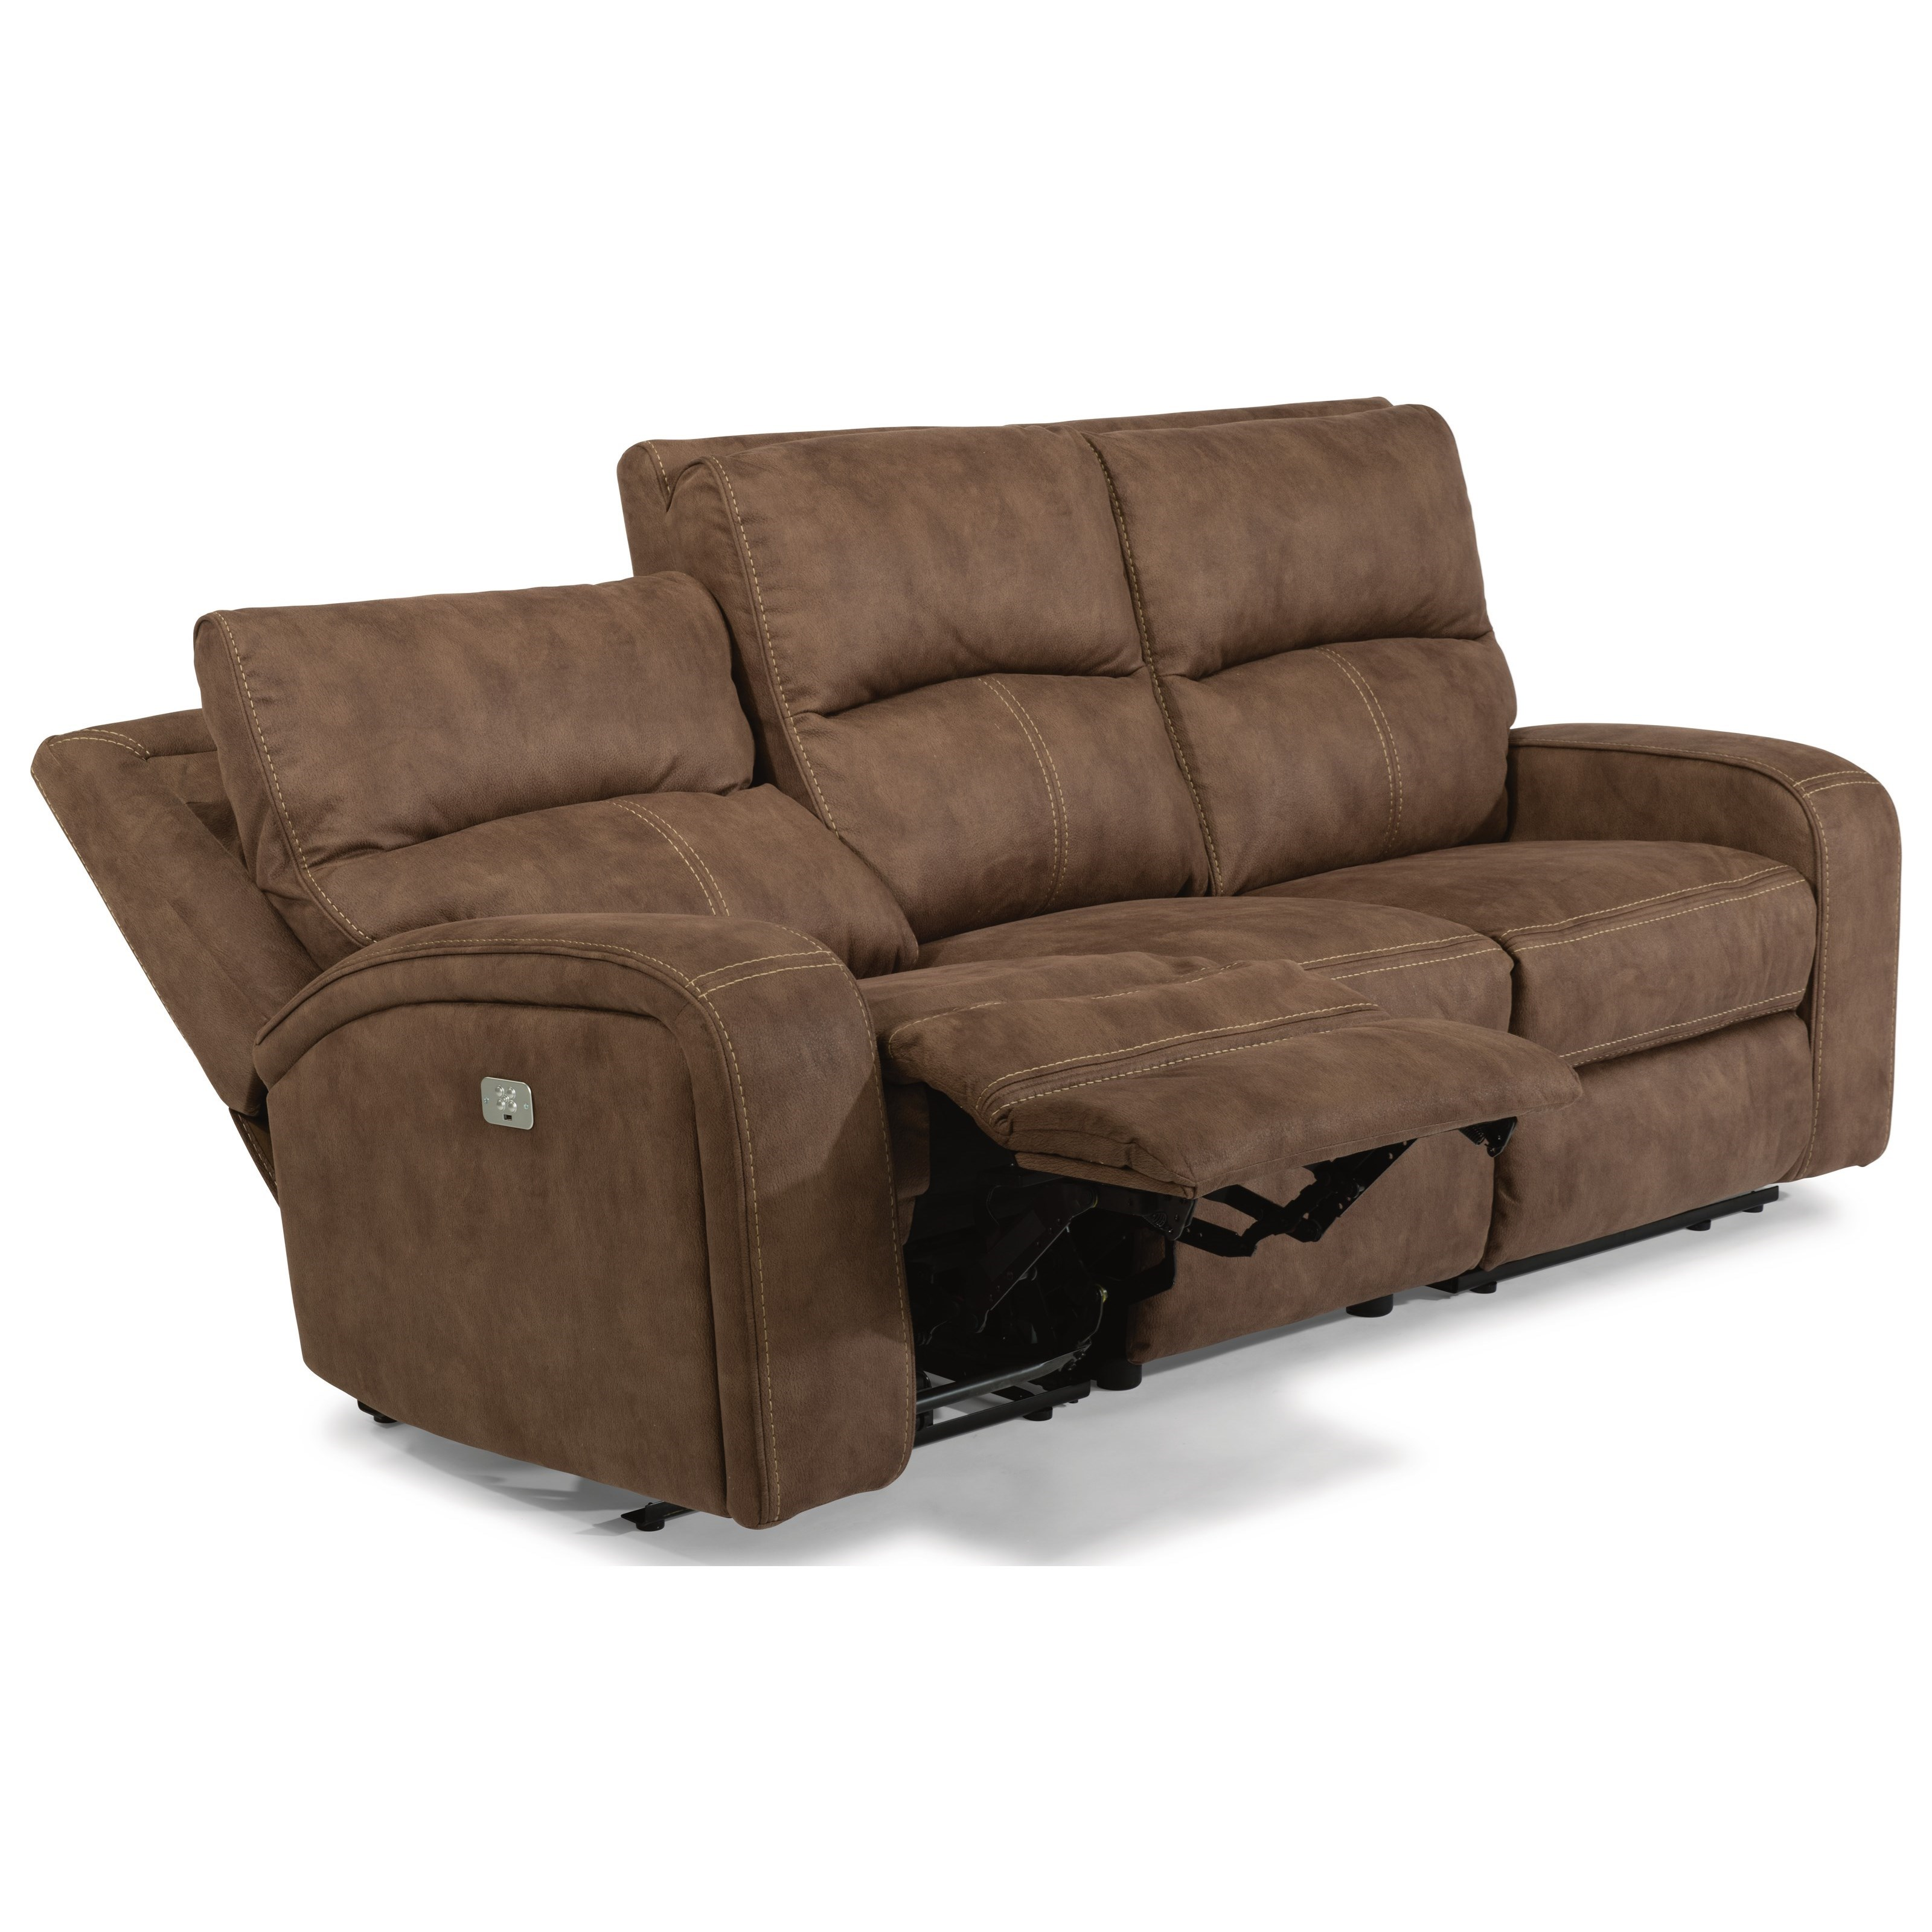 Latitudes - Nirvana Power Reclining Sofa with Power Headrests by Flexsteel at Walker's Furniture